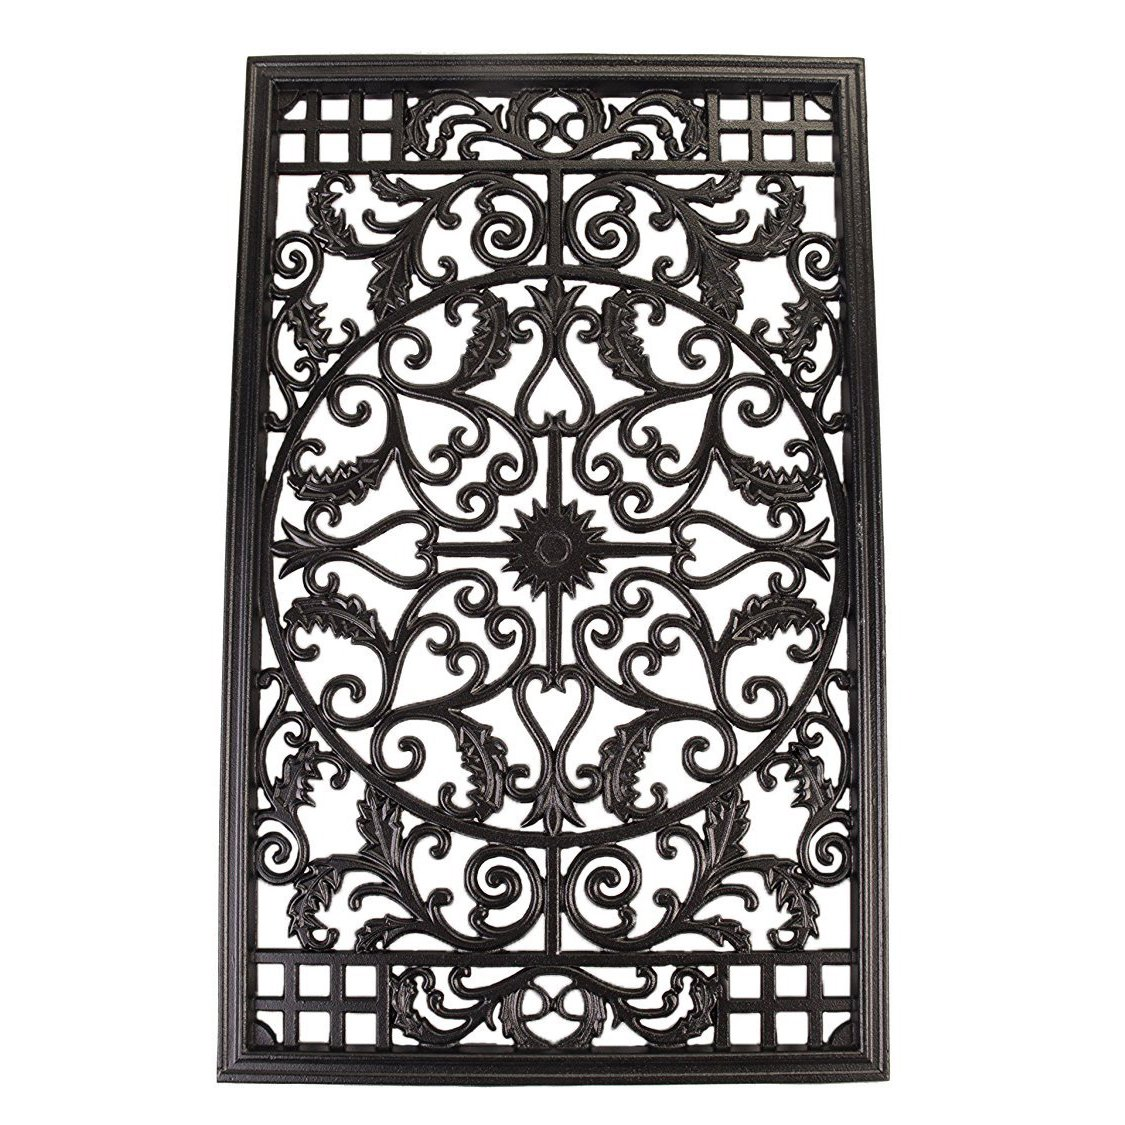 Nuvo Iron RECTANGLE DECORATIVE GATE FENCE INSERT ACW61 Fencing,Fence Gates,Home